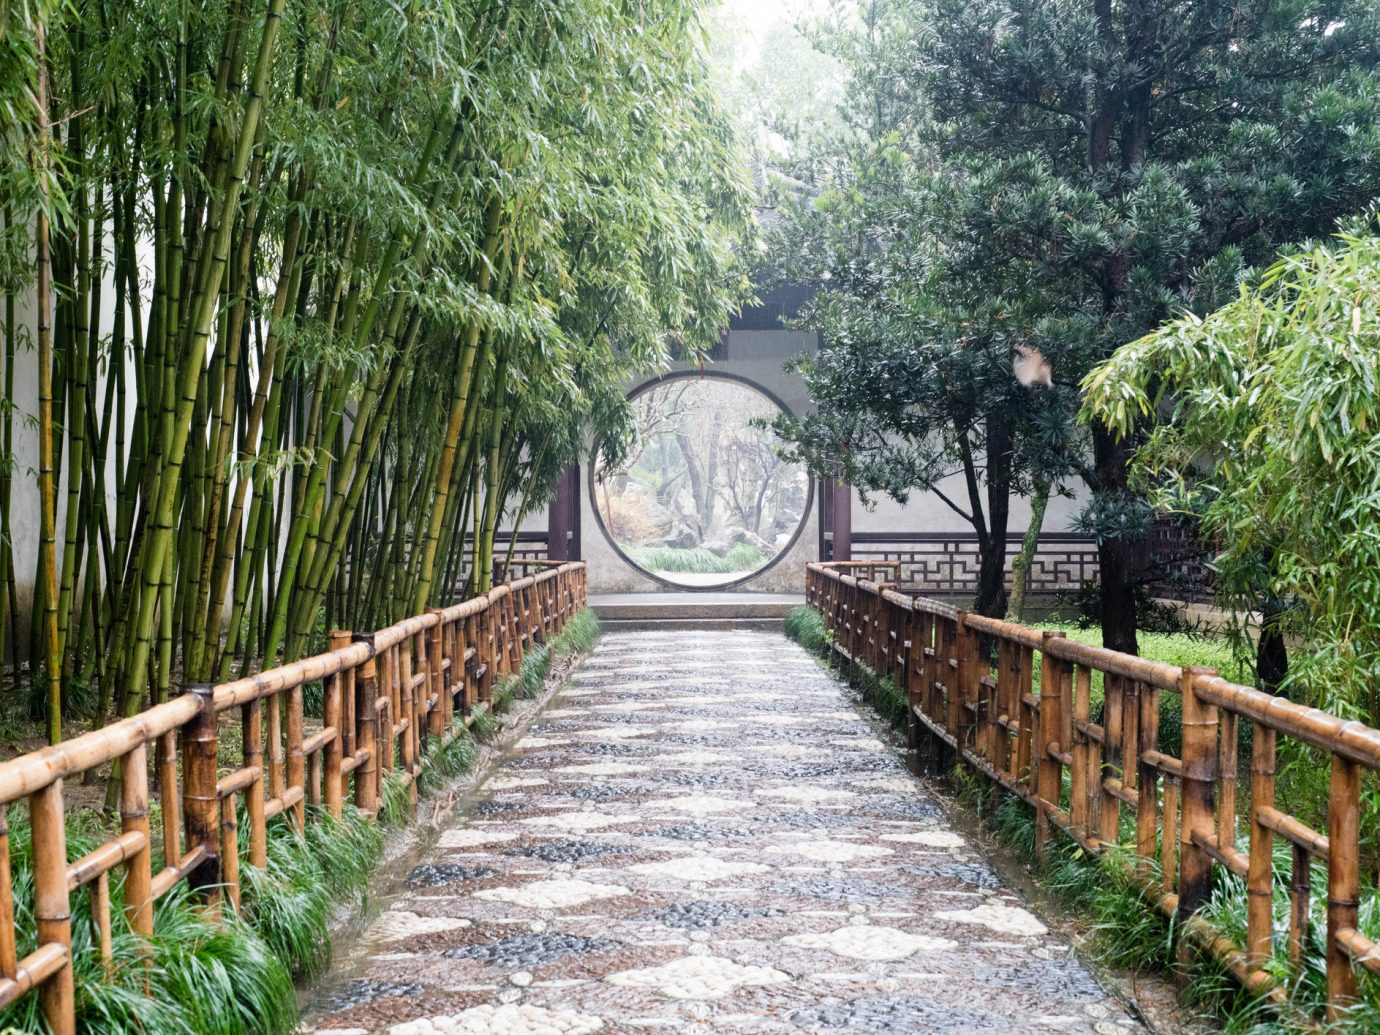 Offbeat tree Fence outdoor walkway bridge plant Forest Garden waterway woodland Jungle area lined surrounded